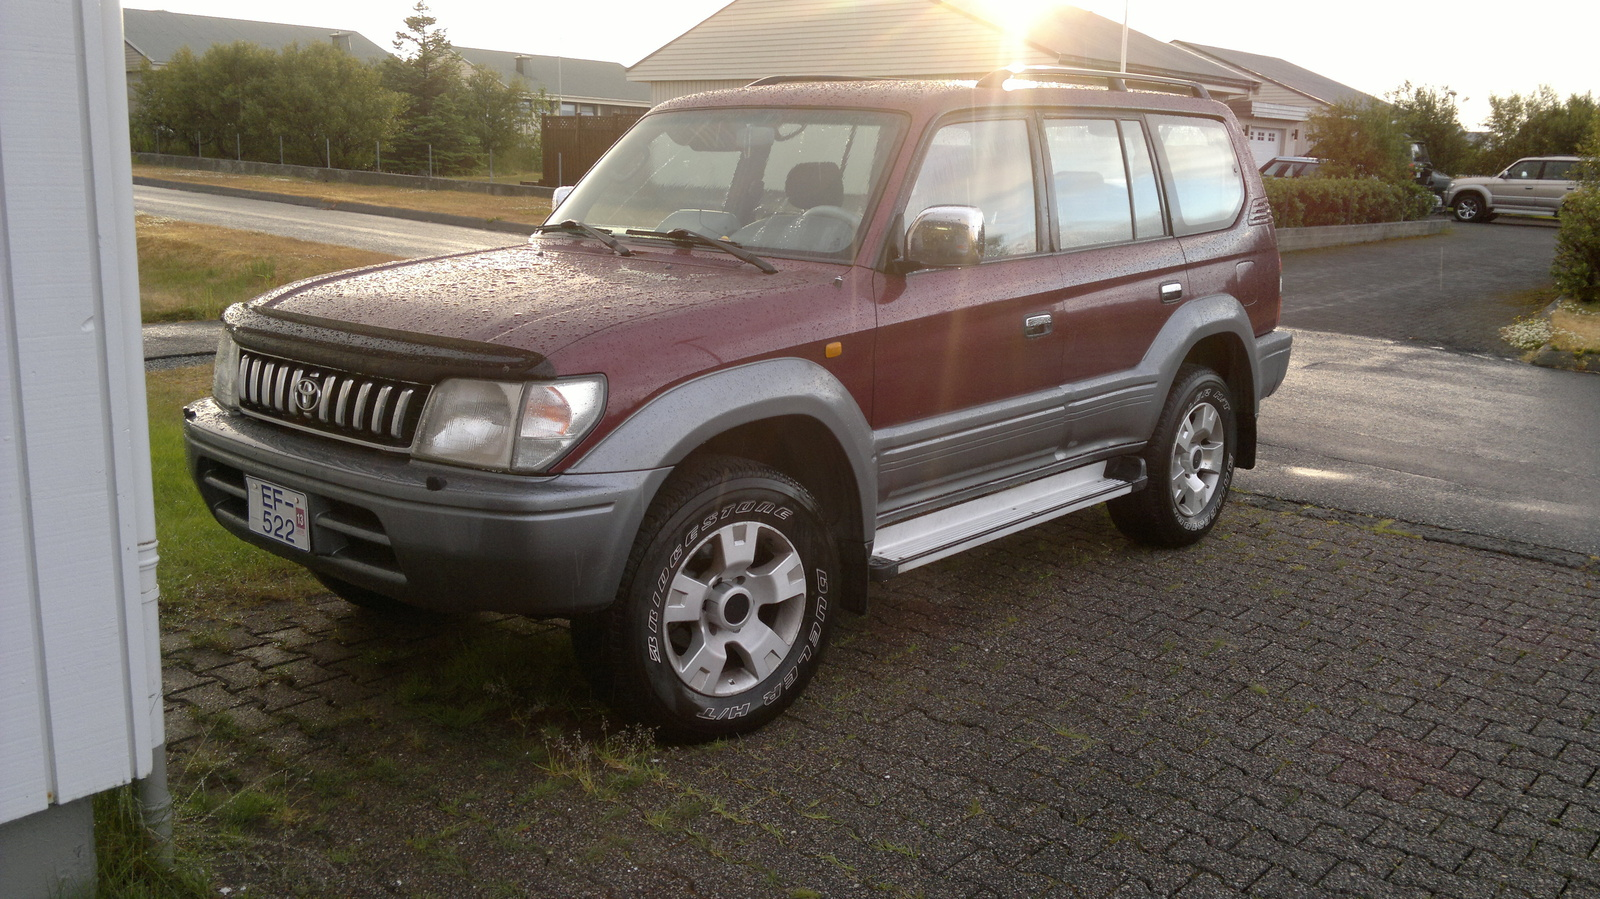 1997 Toyota Land Cruiser Prado picture